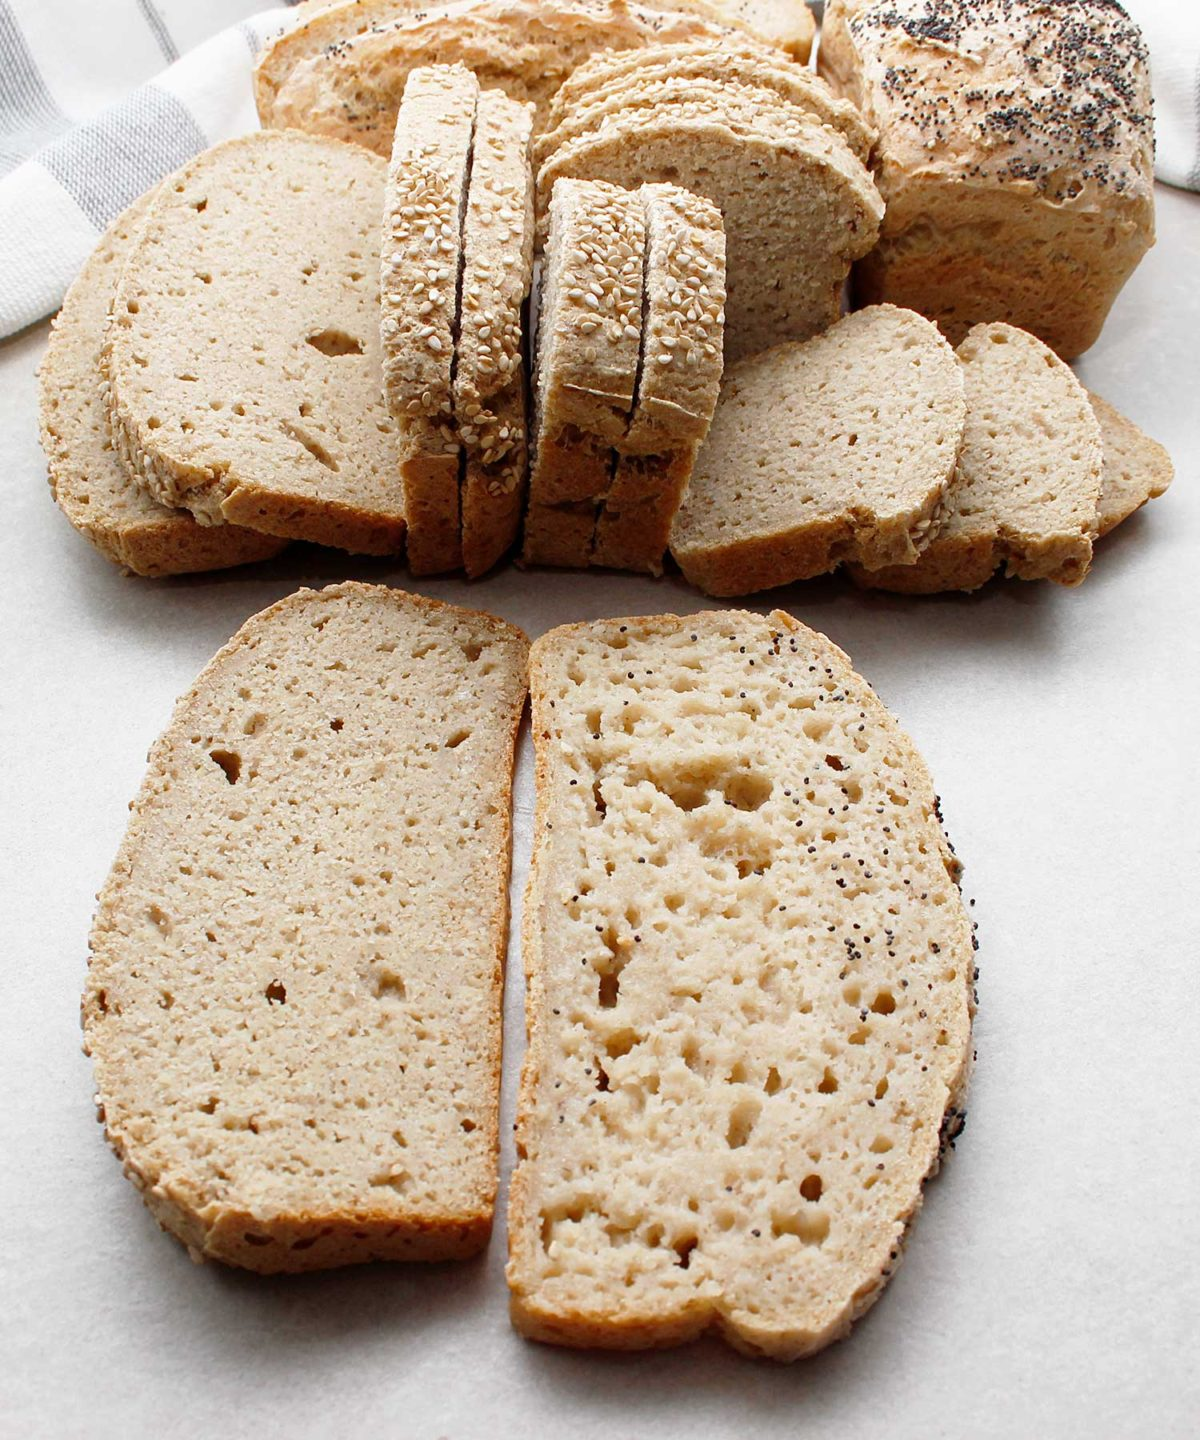 Comparing yeast-free, gluten-free, vegan bread slices. One with xanthan gum and one without.